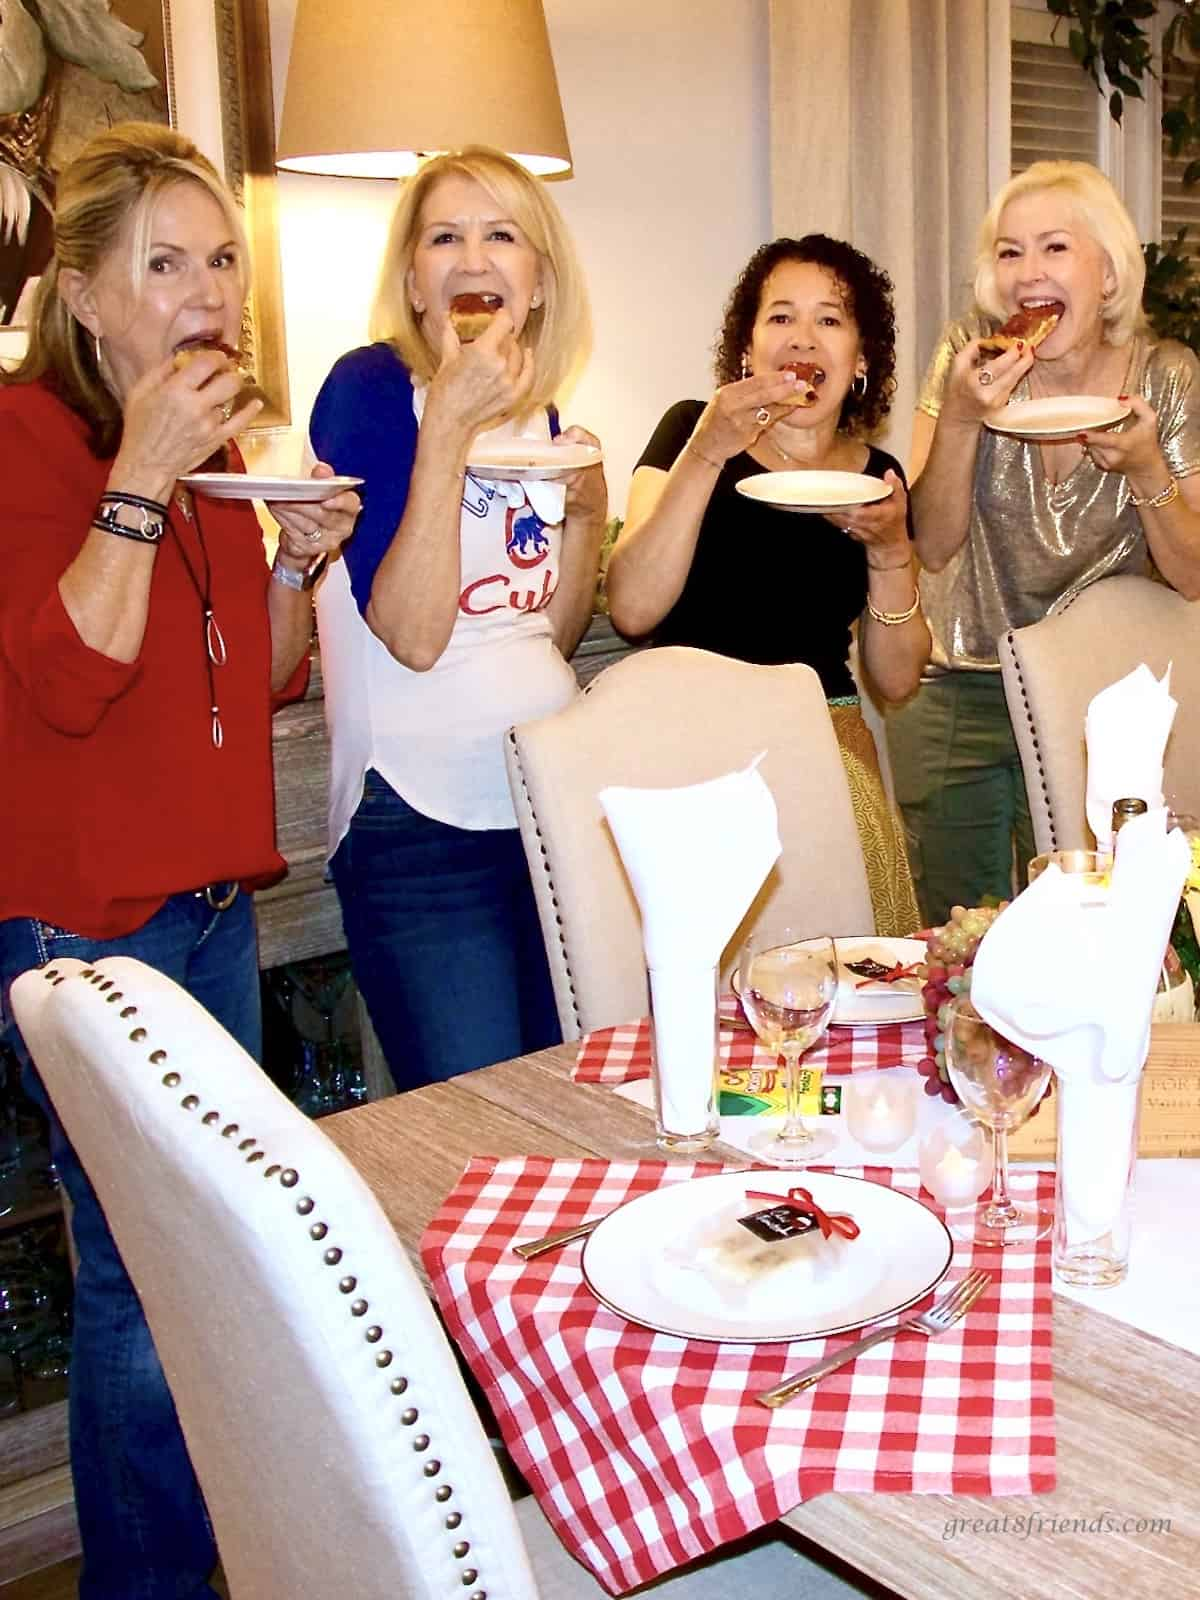 Four women eating each eating a piece of pizza standing in a dining room with a table set for an Italian meal.